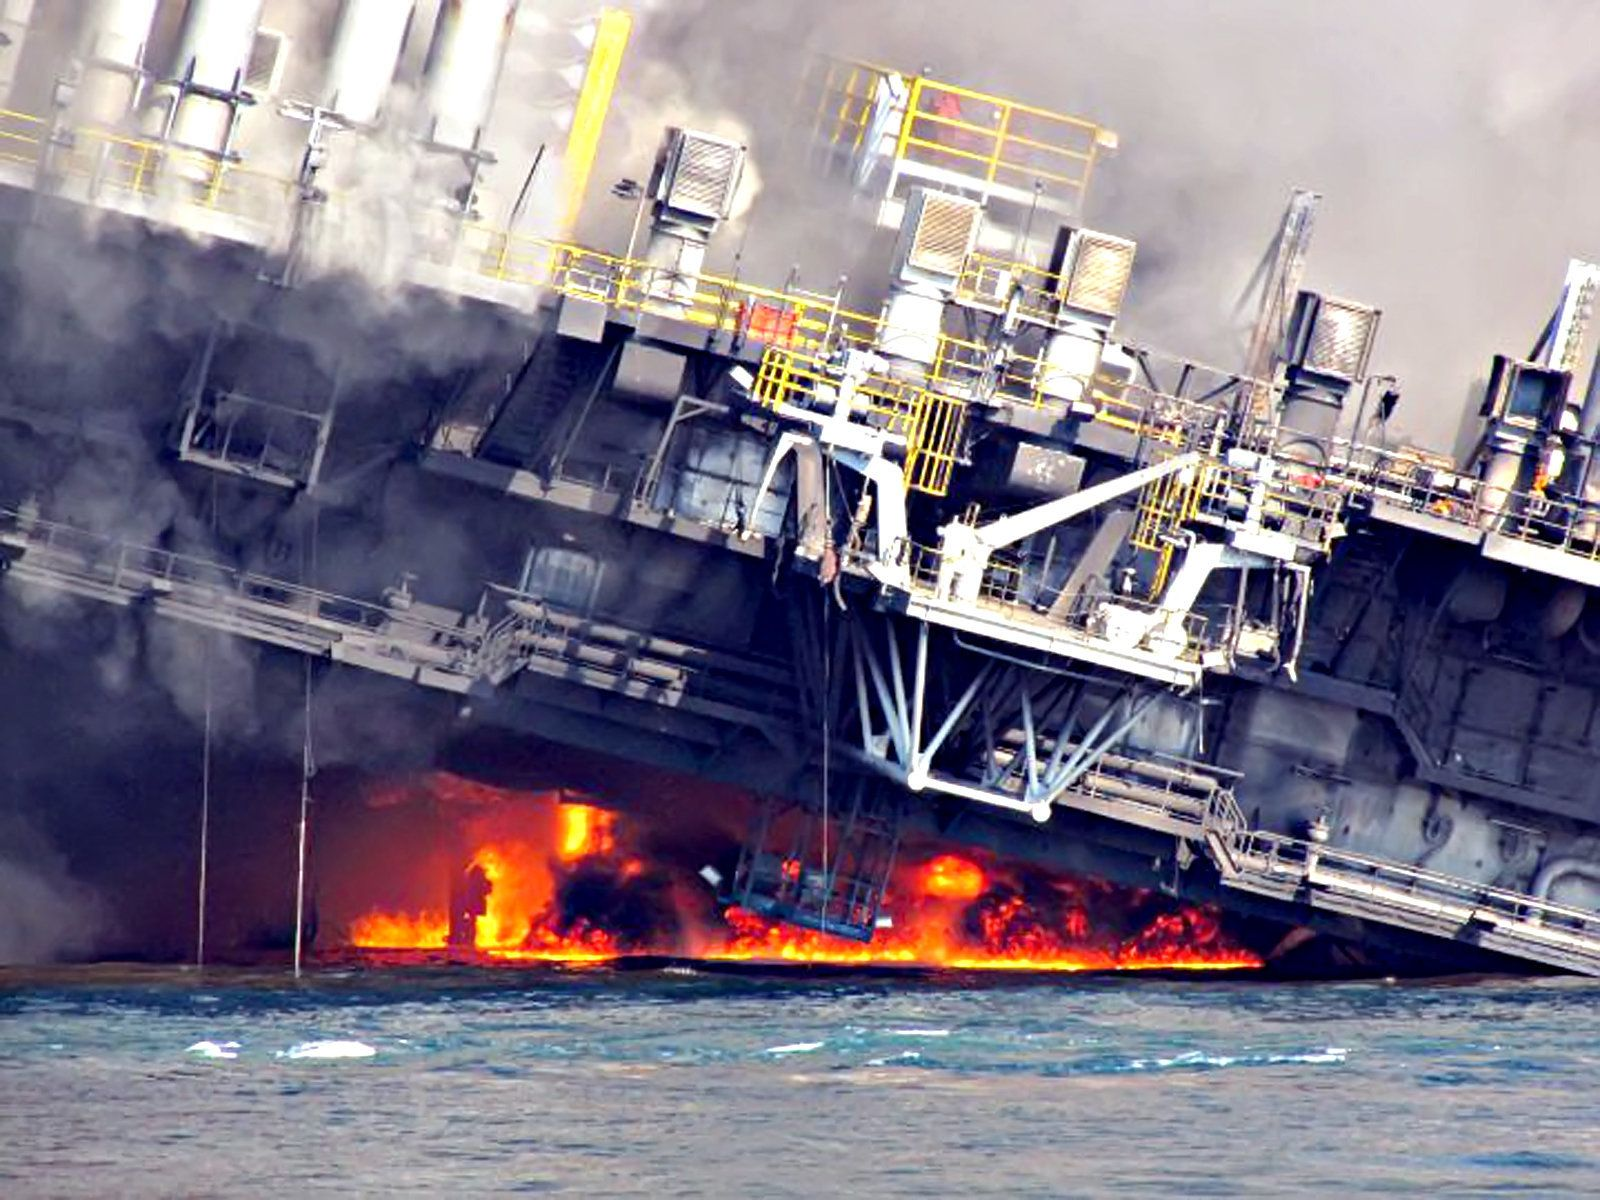 The offshore oil rig Deepwater Horizon burns in the Gulf of Mexico April 21, 2010. A huge oil slick remained offshore and largely stationary today, May 4, 2010, in a development that should help cleanup efforts. (Photo courtesy Jon T. Fritz/MCT via Getty Images)